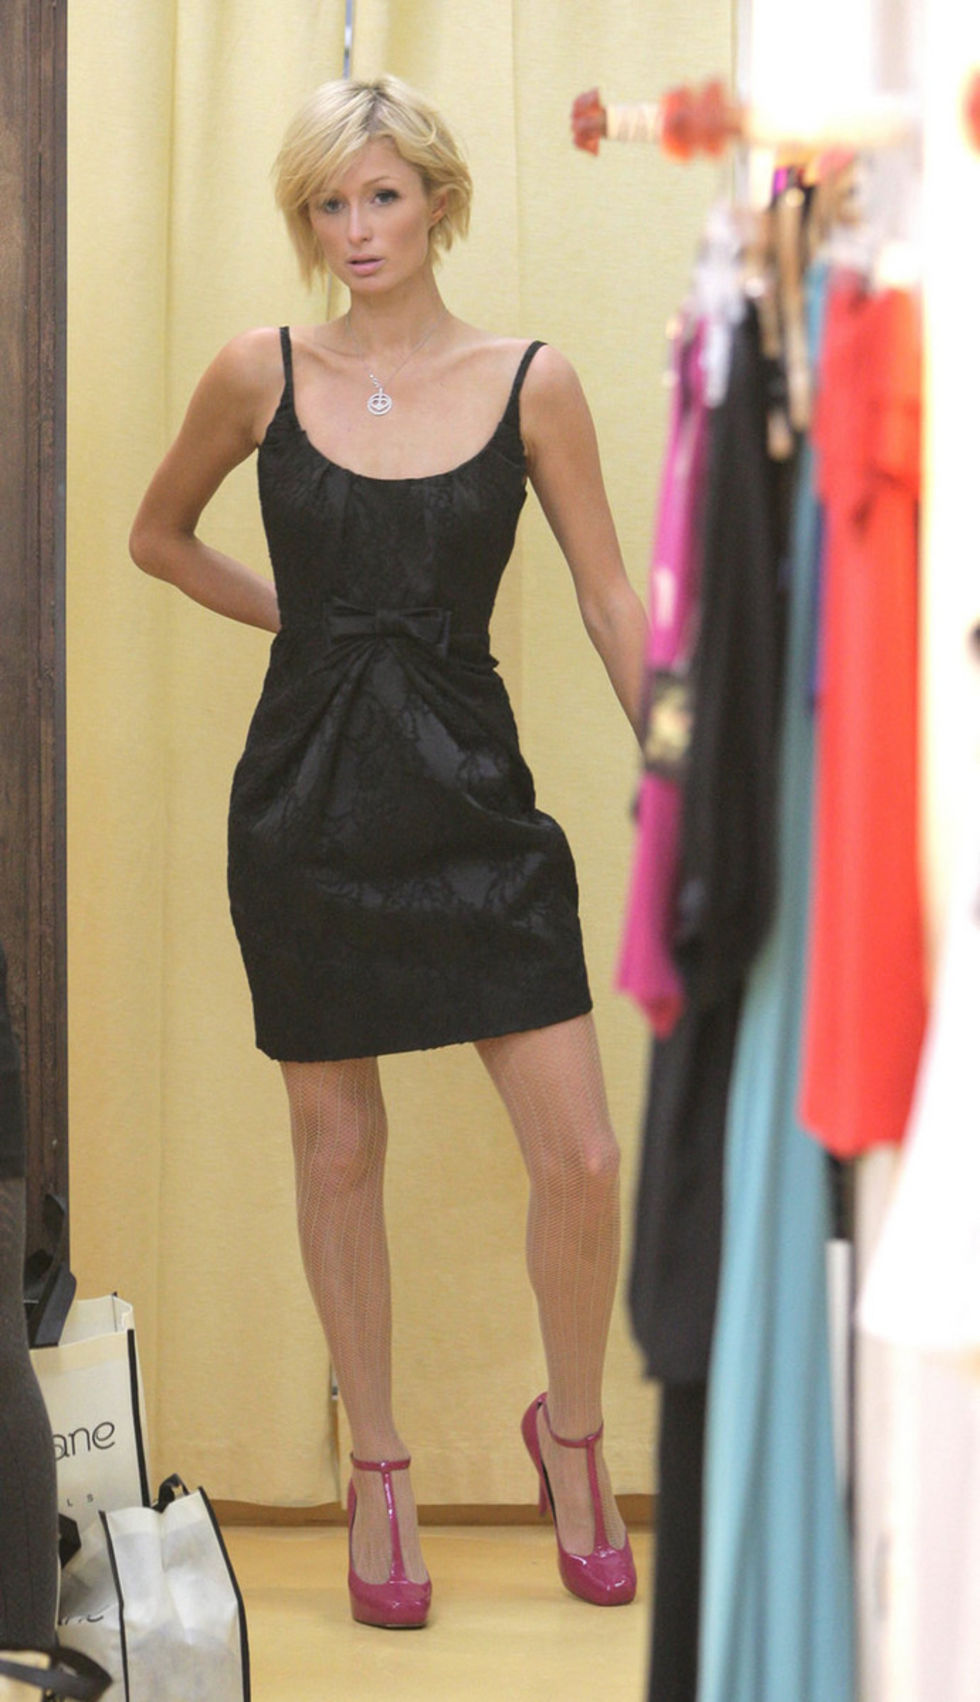 paris-hilton-shopping-at-harmony-lane-boutique-in-beverly-hills-01